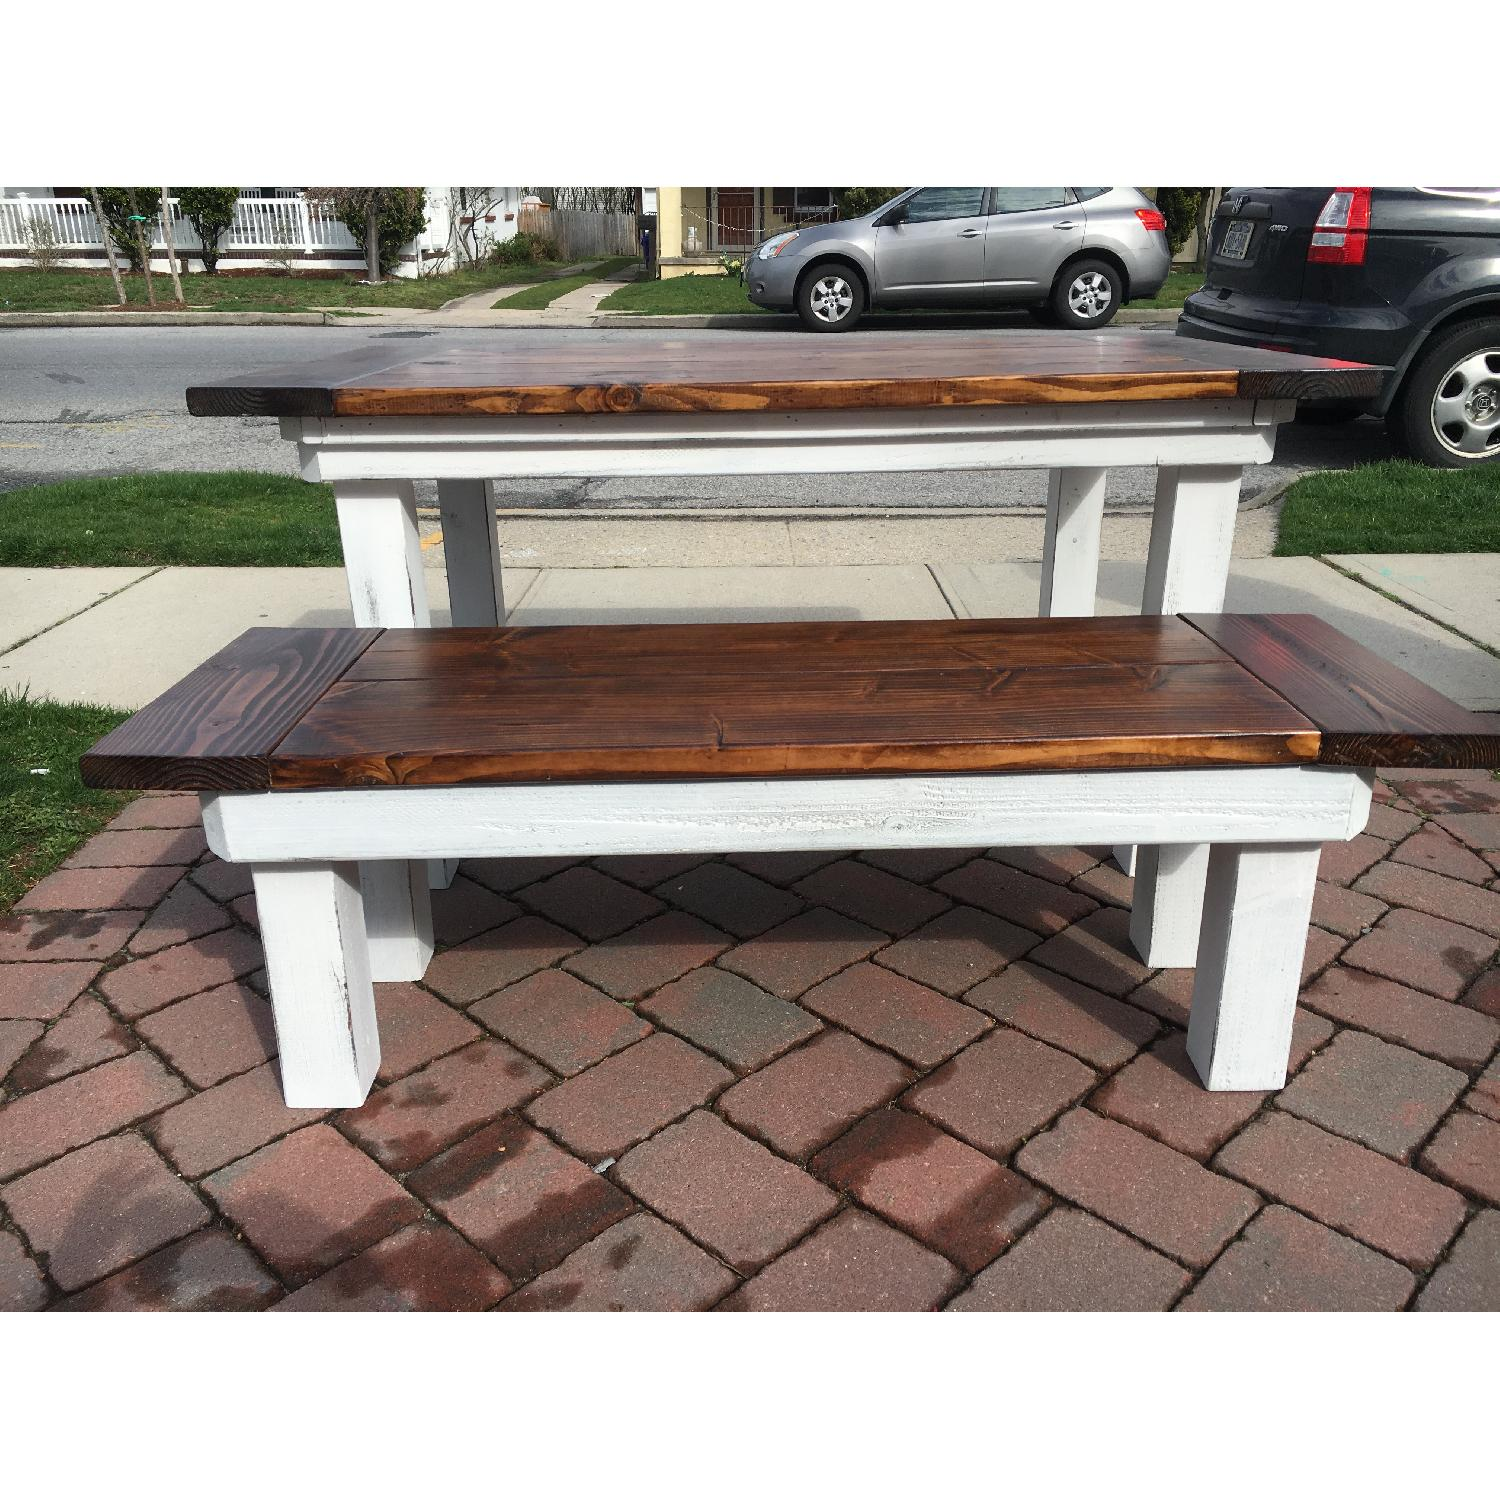 Rustic Farm Table w/ 1 Bench - image-2